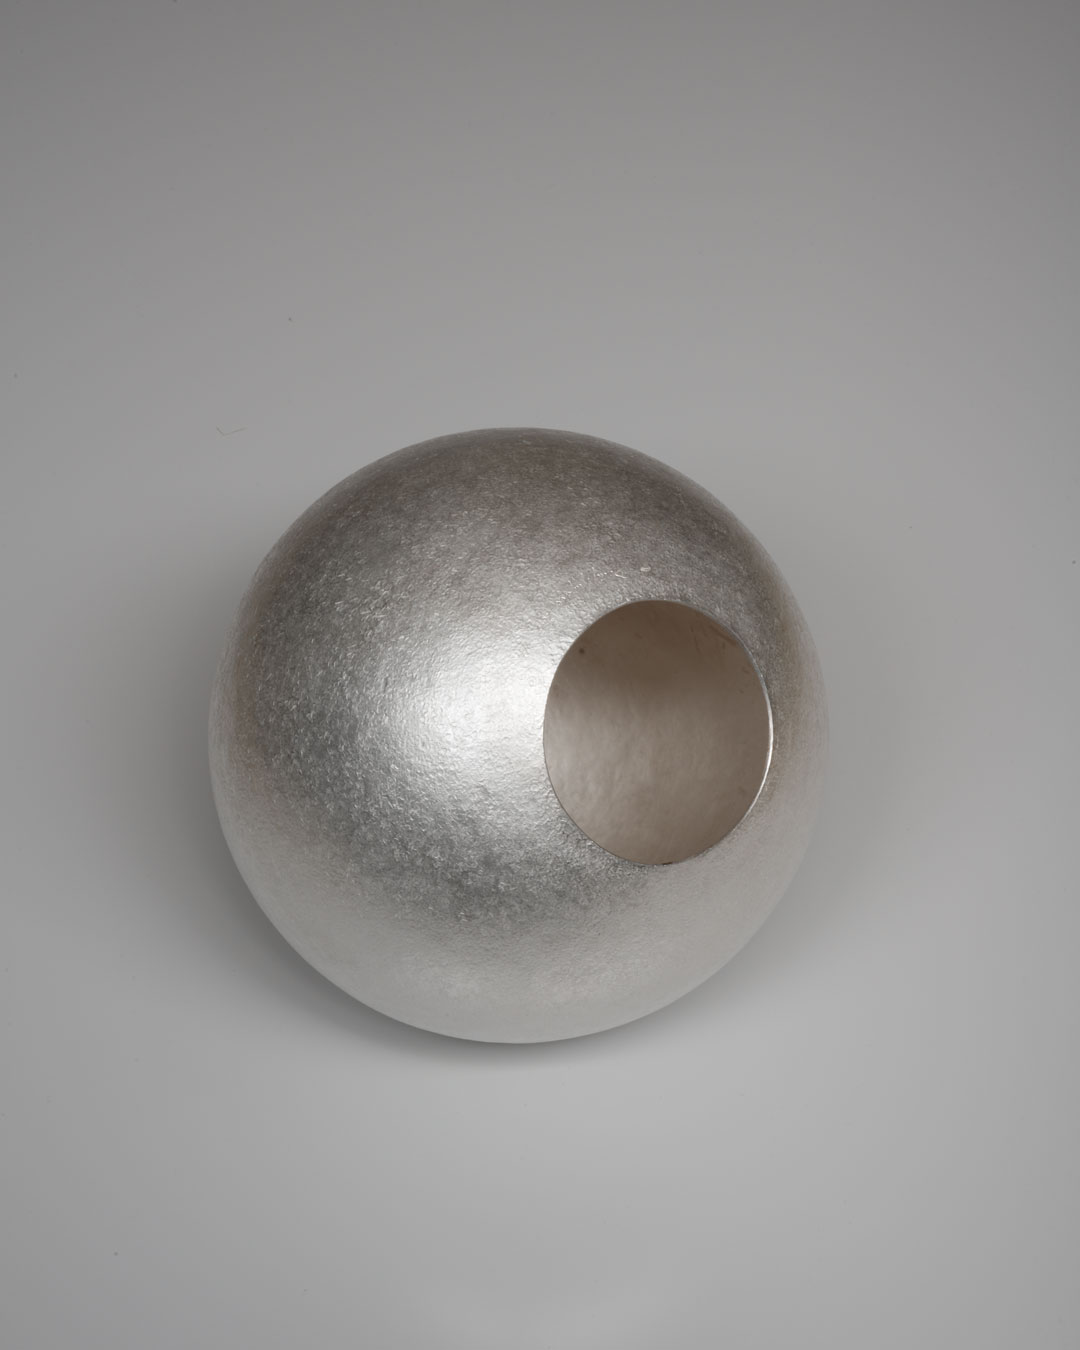 David Huycke, White Moon, 2012, object; silver 925/1000 - 723 gram, 165 x 165 x 165 mm, €4500 (image 2 of 2)